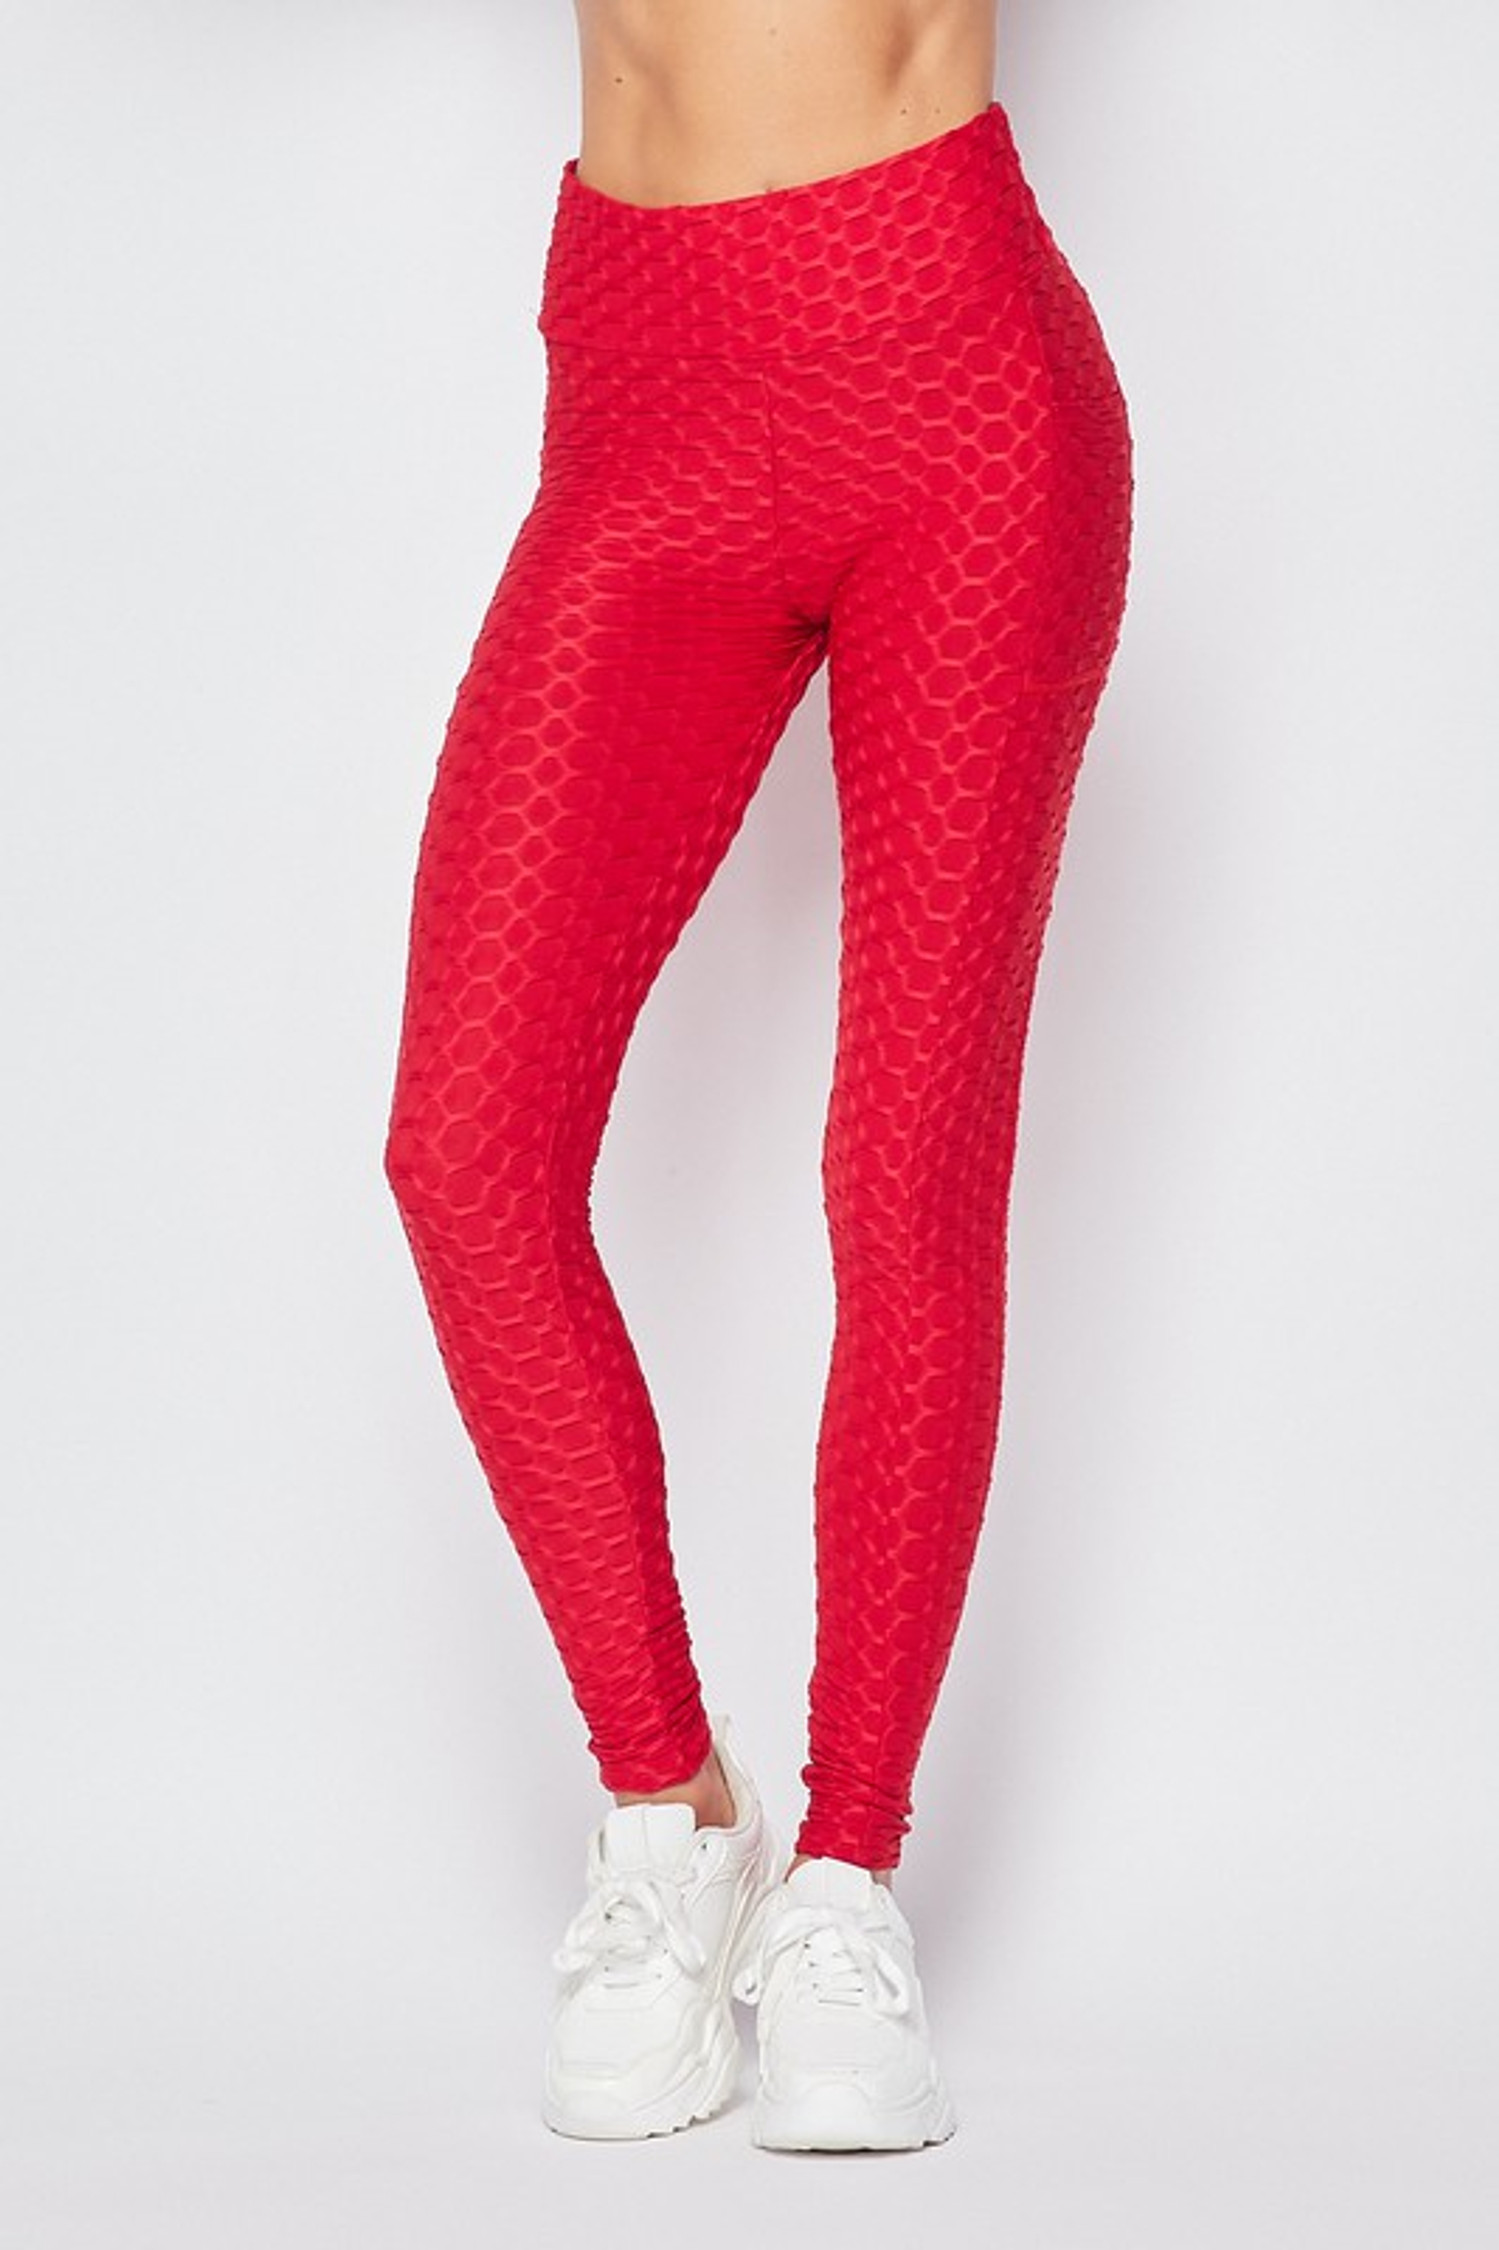 Front side image of Red Scrunch Butt Popcorn Textured High Waisted Leggings with Pockets - Zinati (W&J)